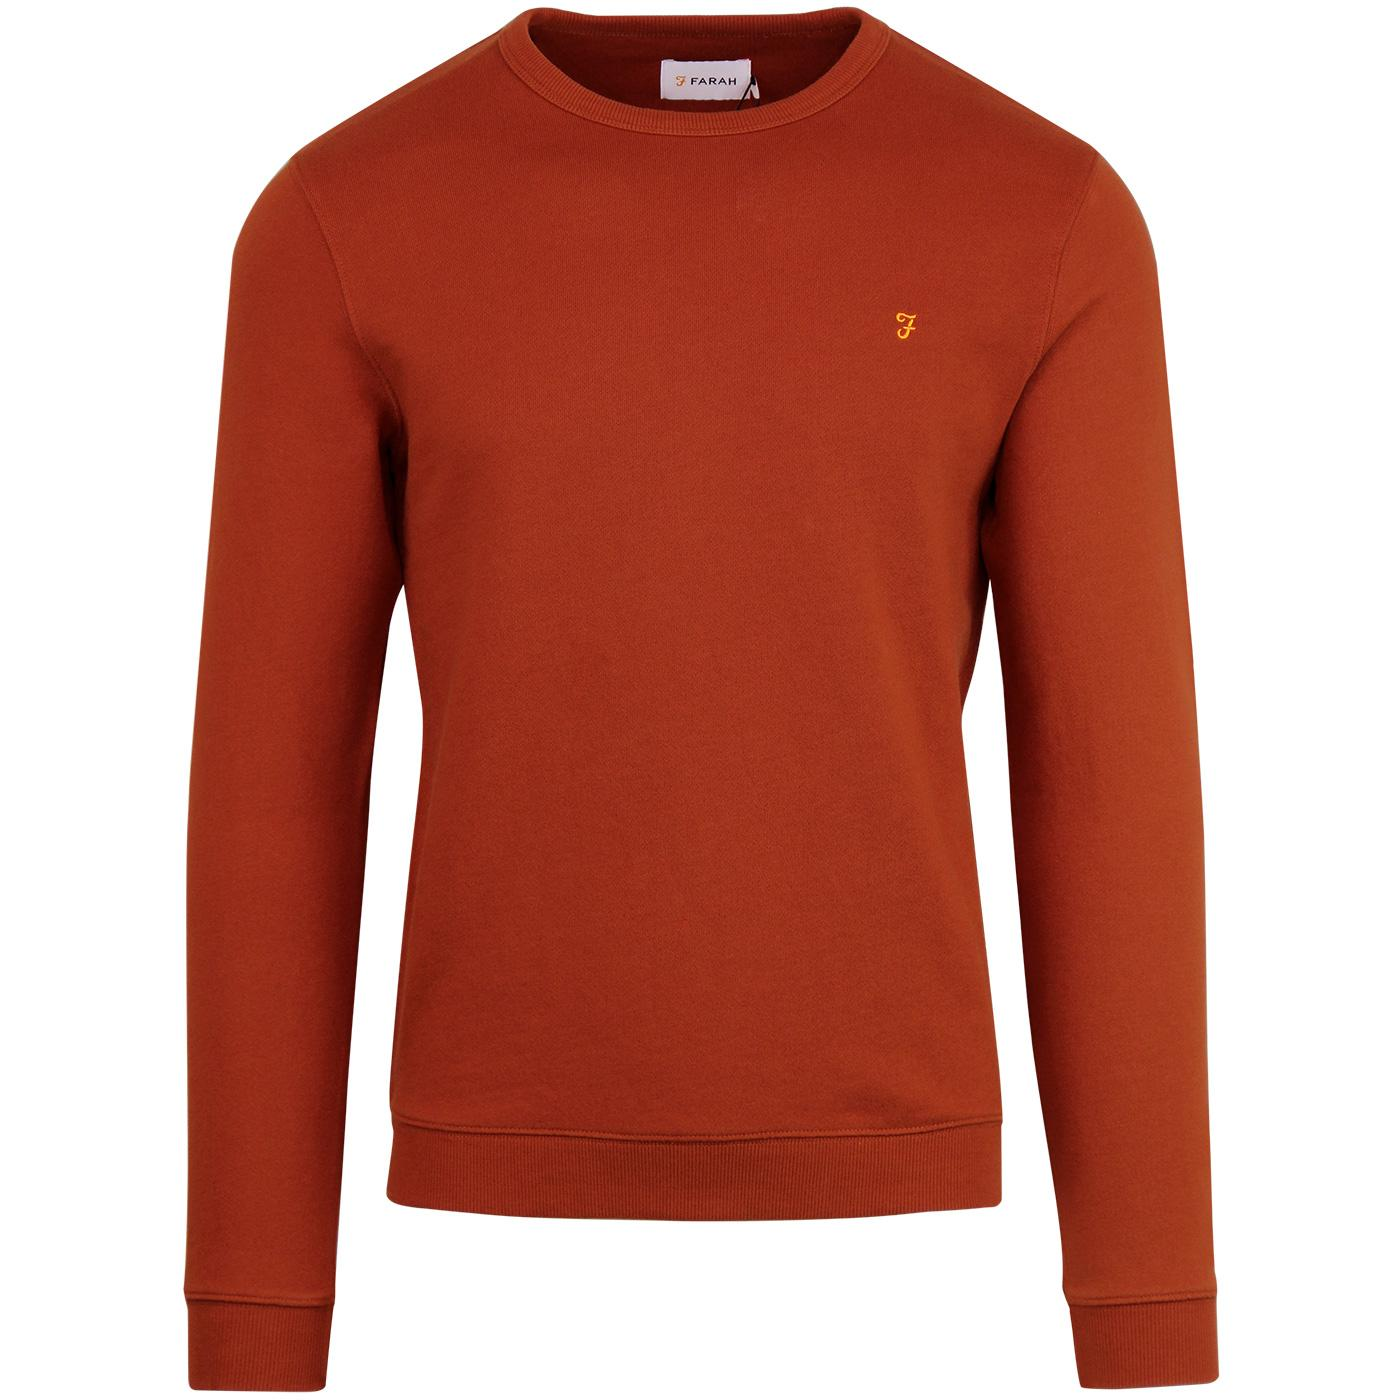 Pickewell FARAH Mens Retro Indie Sweatshirt (Rust)